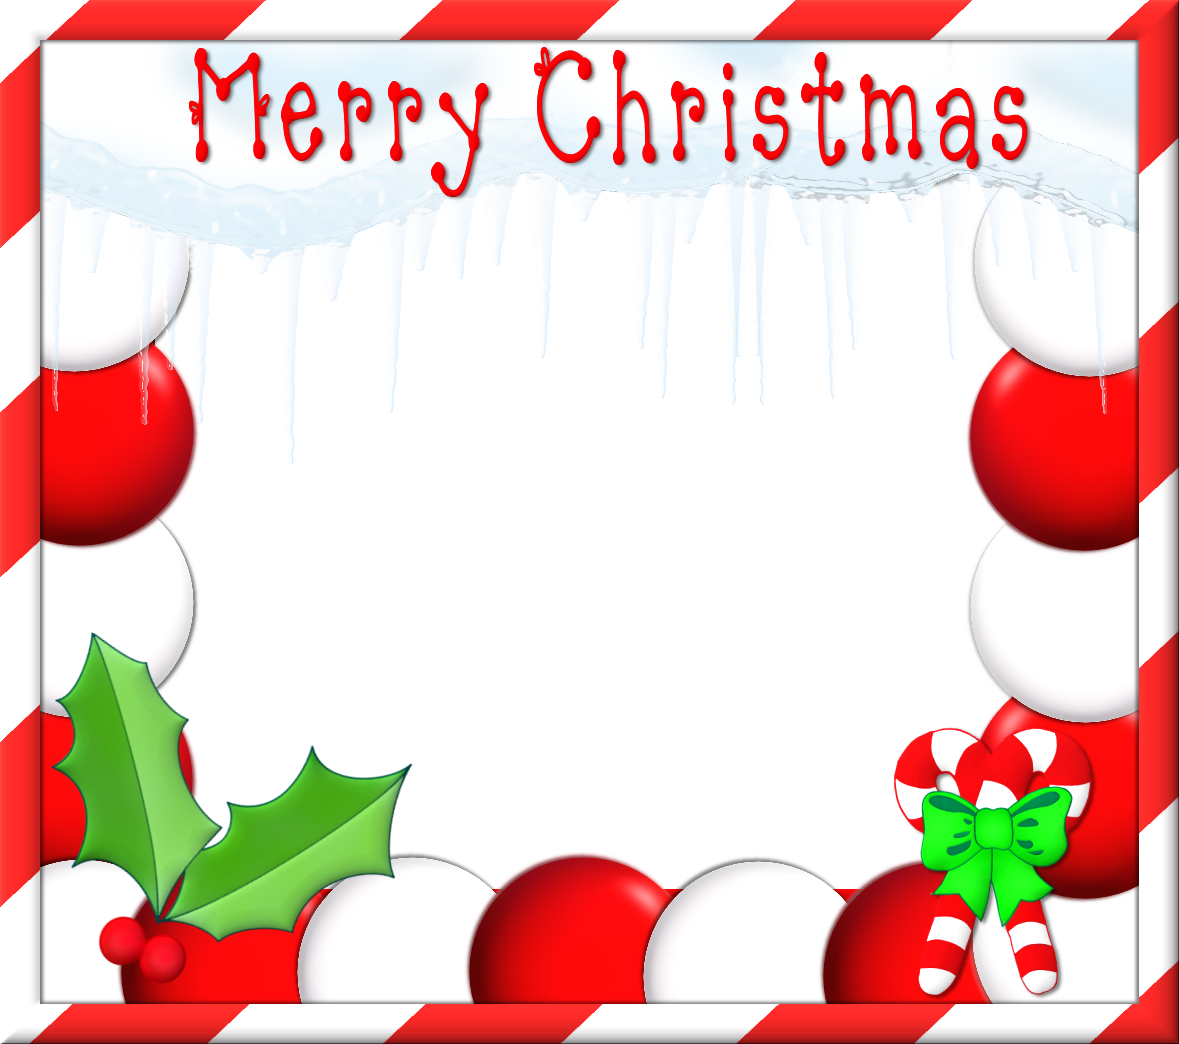 Free Christmas Clipart Borders Backgroun-Free Christmas Clipart Borders Backgrounds | School Clipart-15